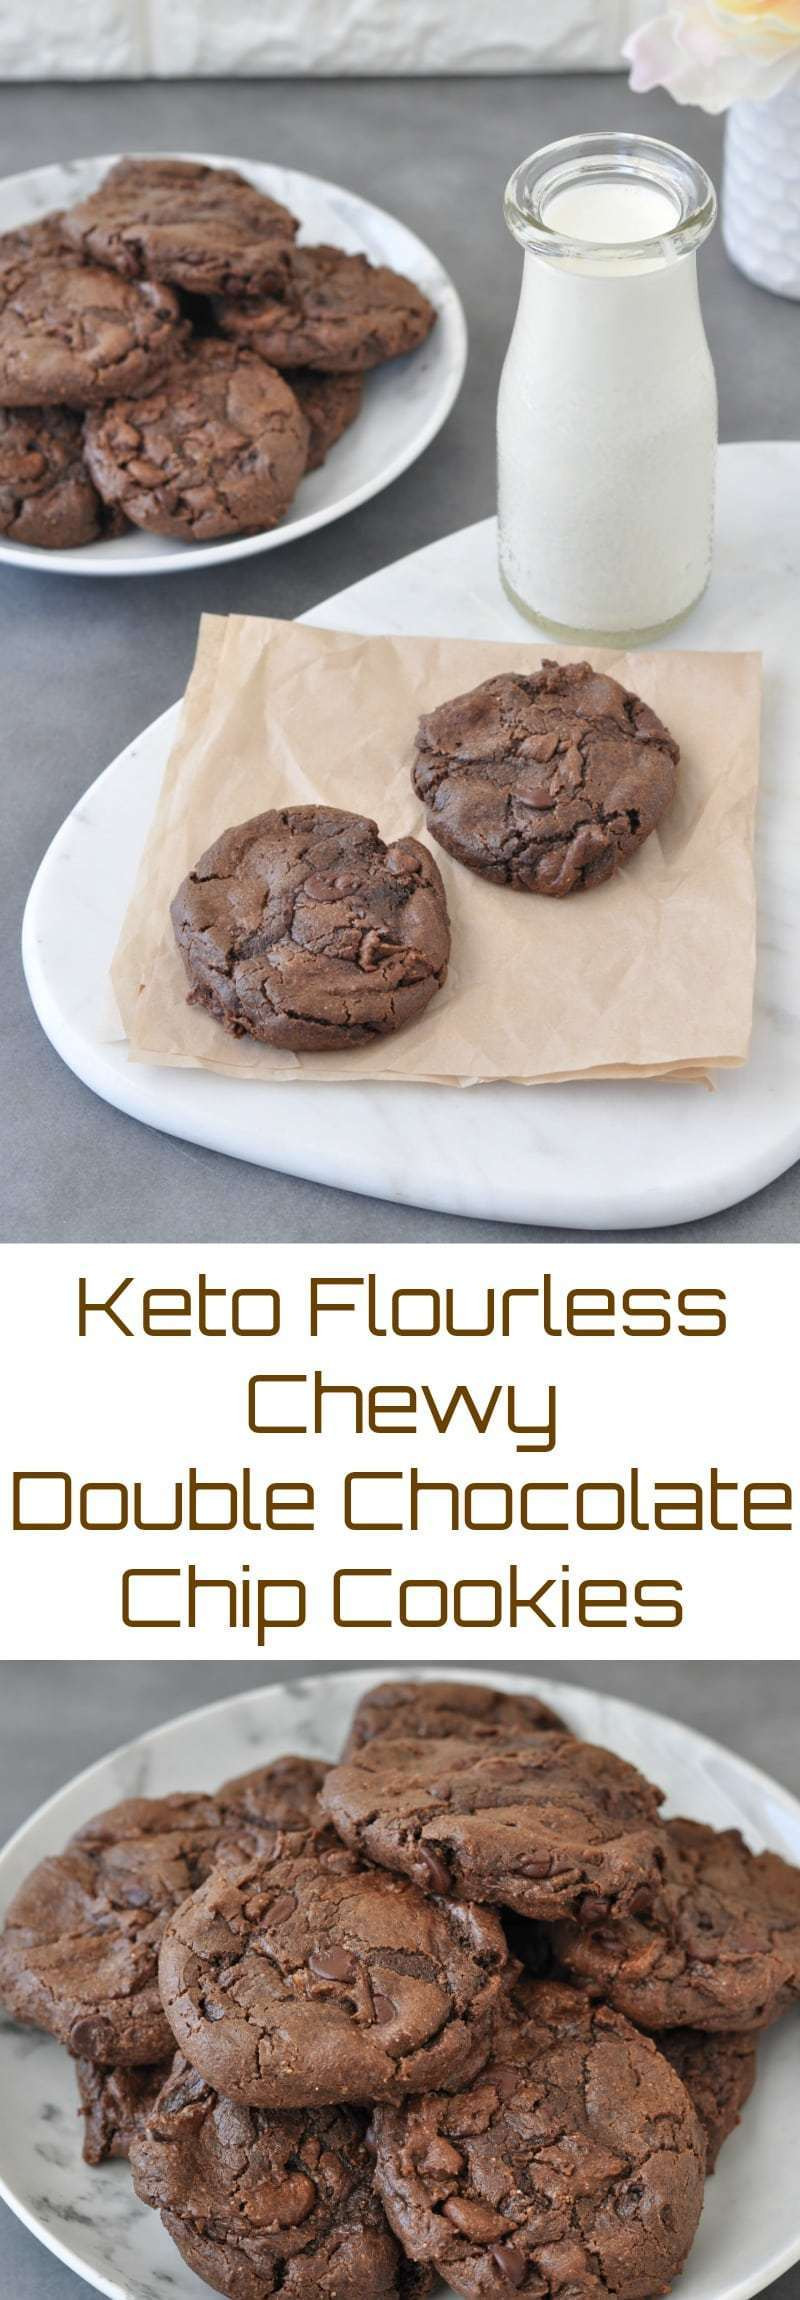 Keto Cookies Recipe  Keto Flourless Chewy Double Chocolate Chip Cookies